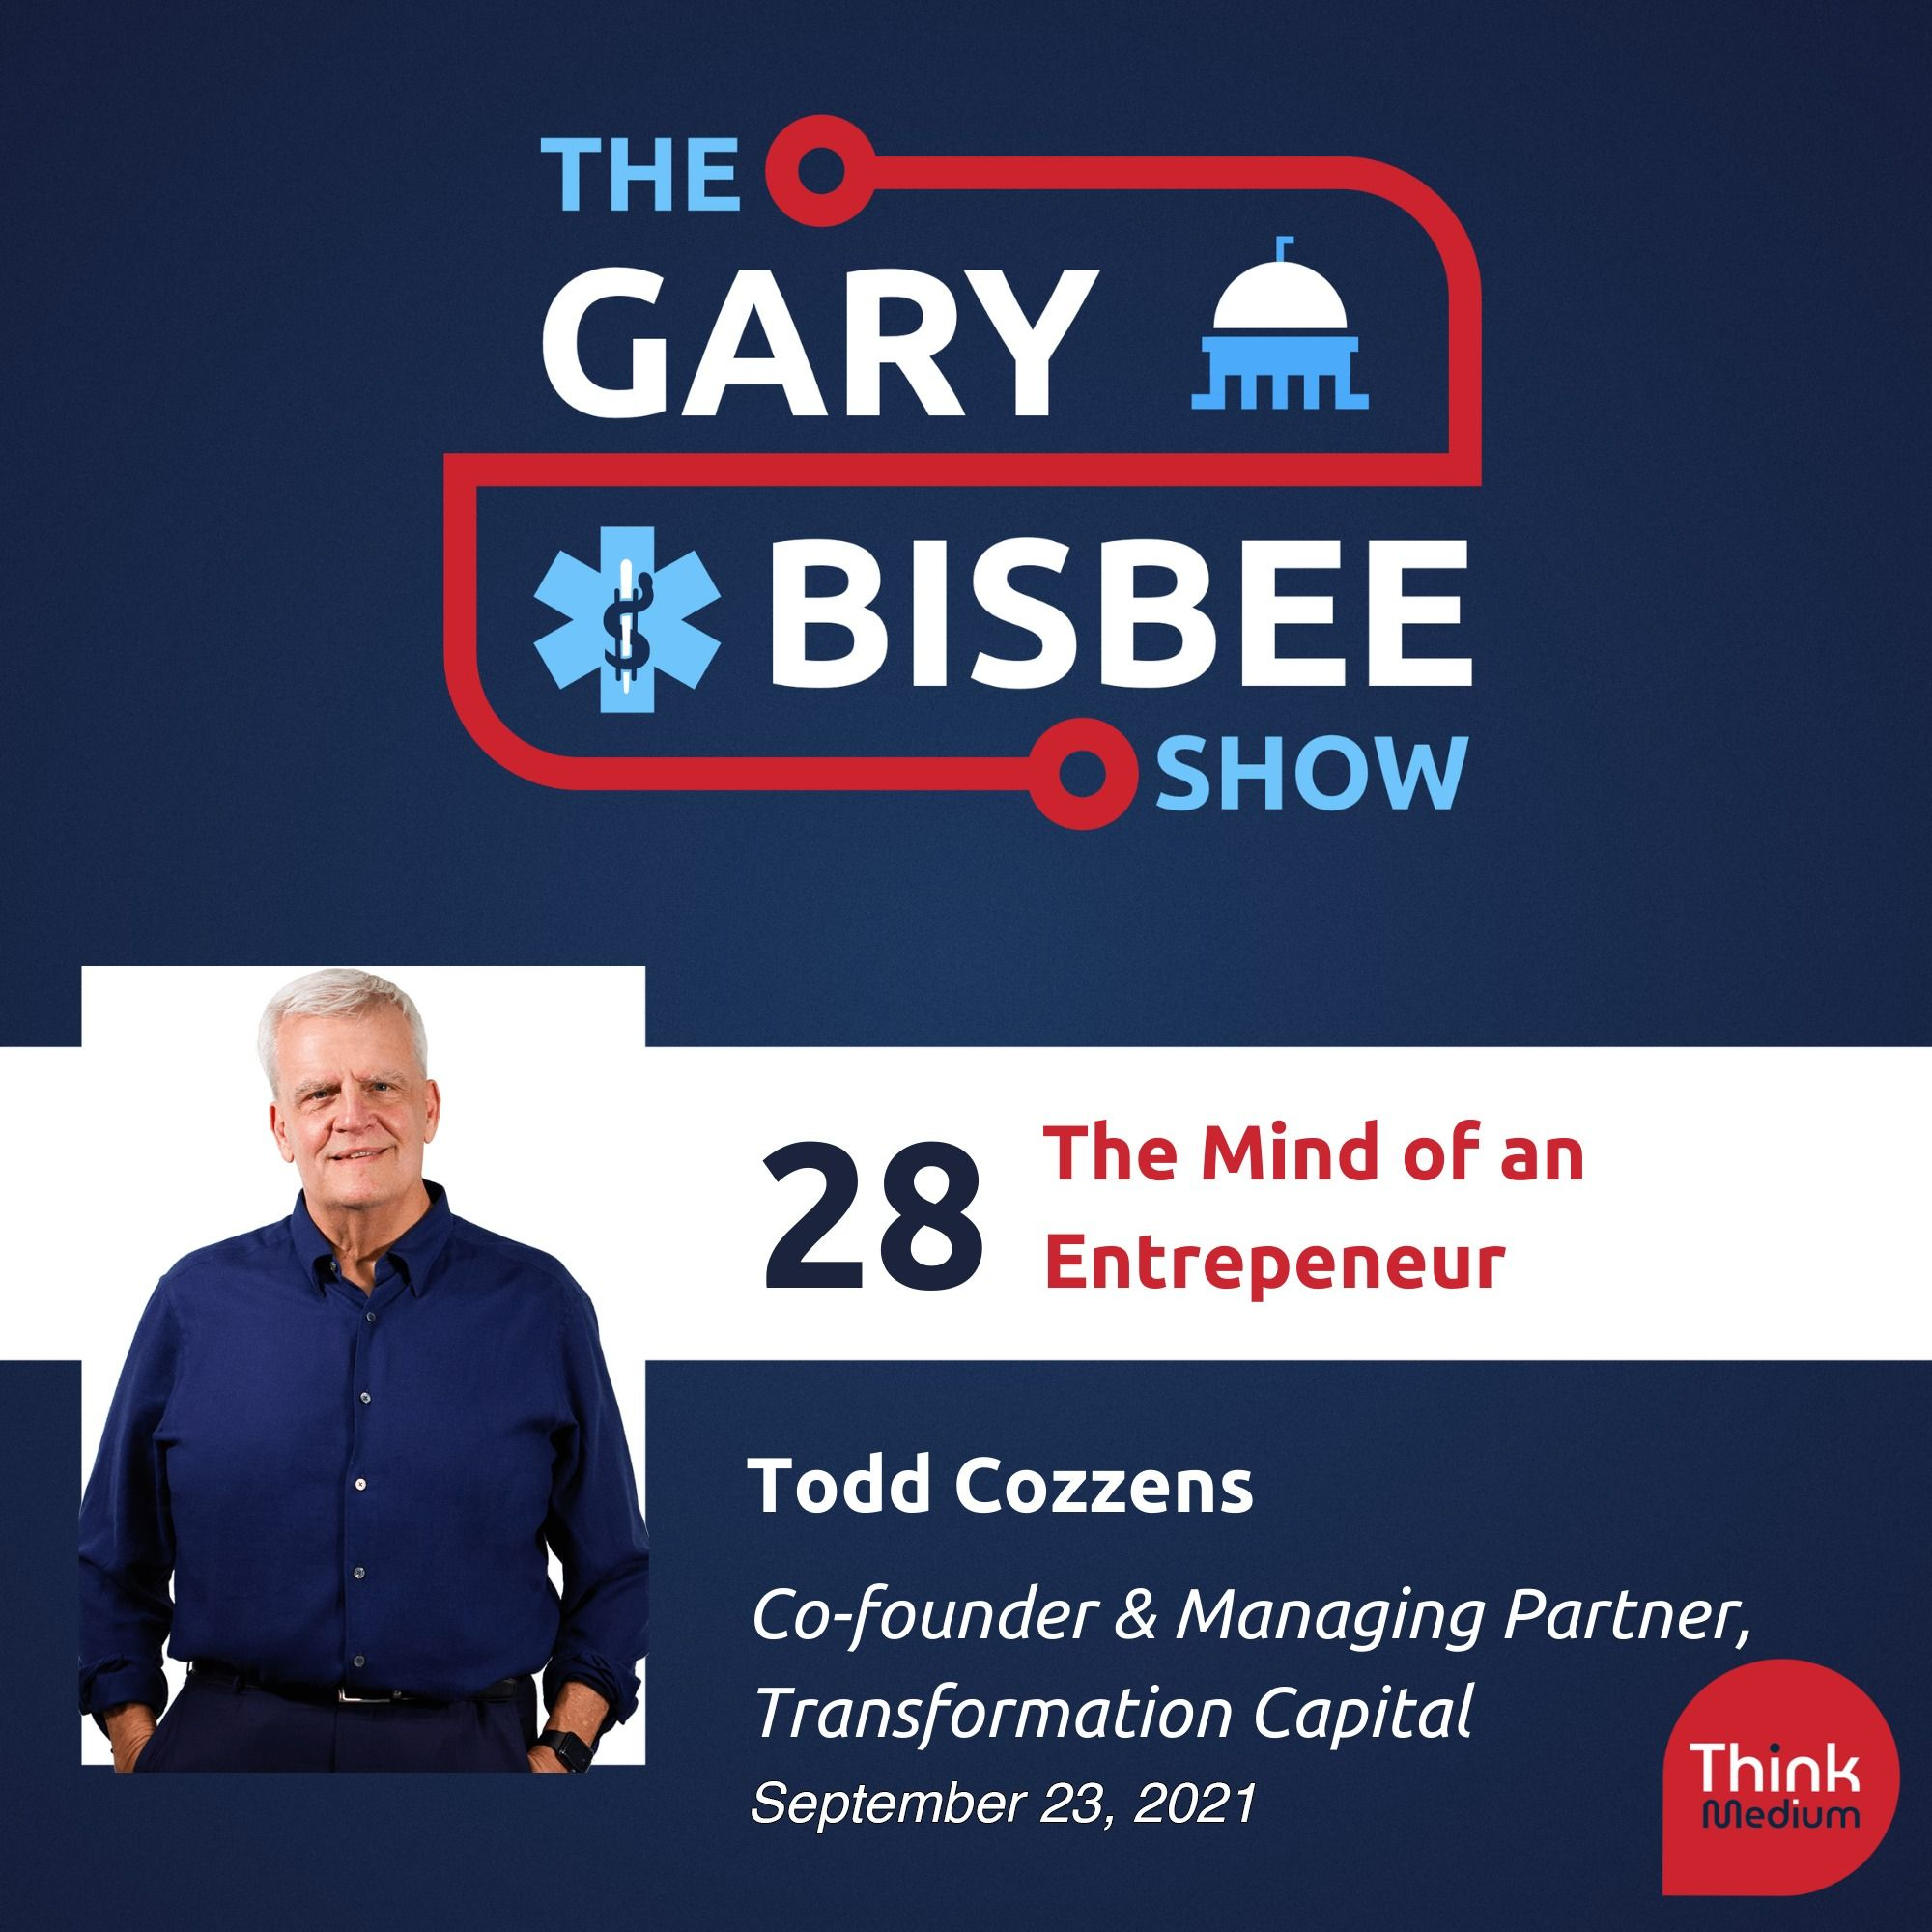 28: The Mind of an Entrepreneur with Todd Cozzens, Co-founder & Managing Partner, Transformation Capital